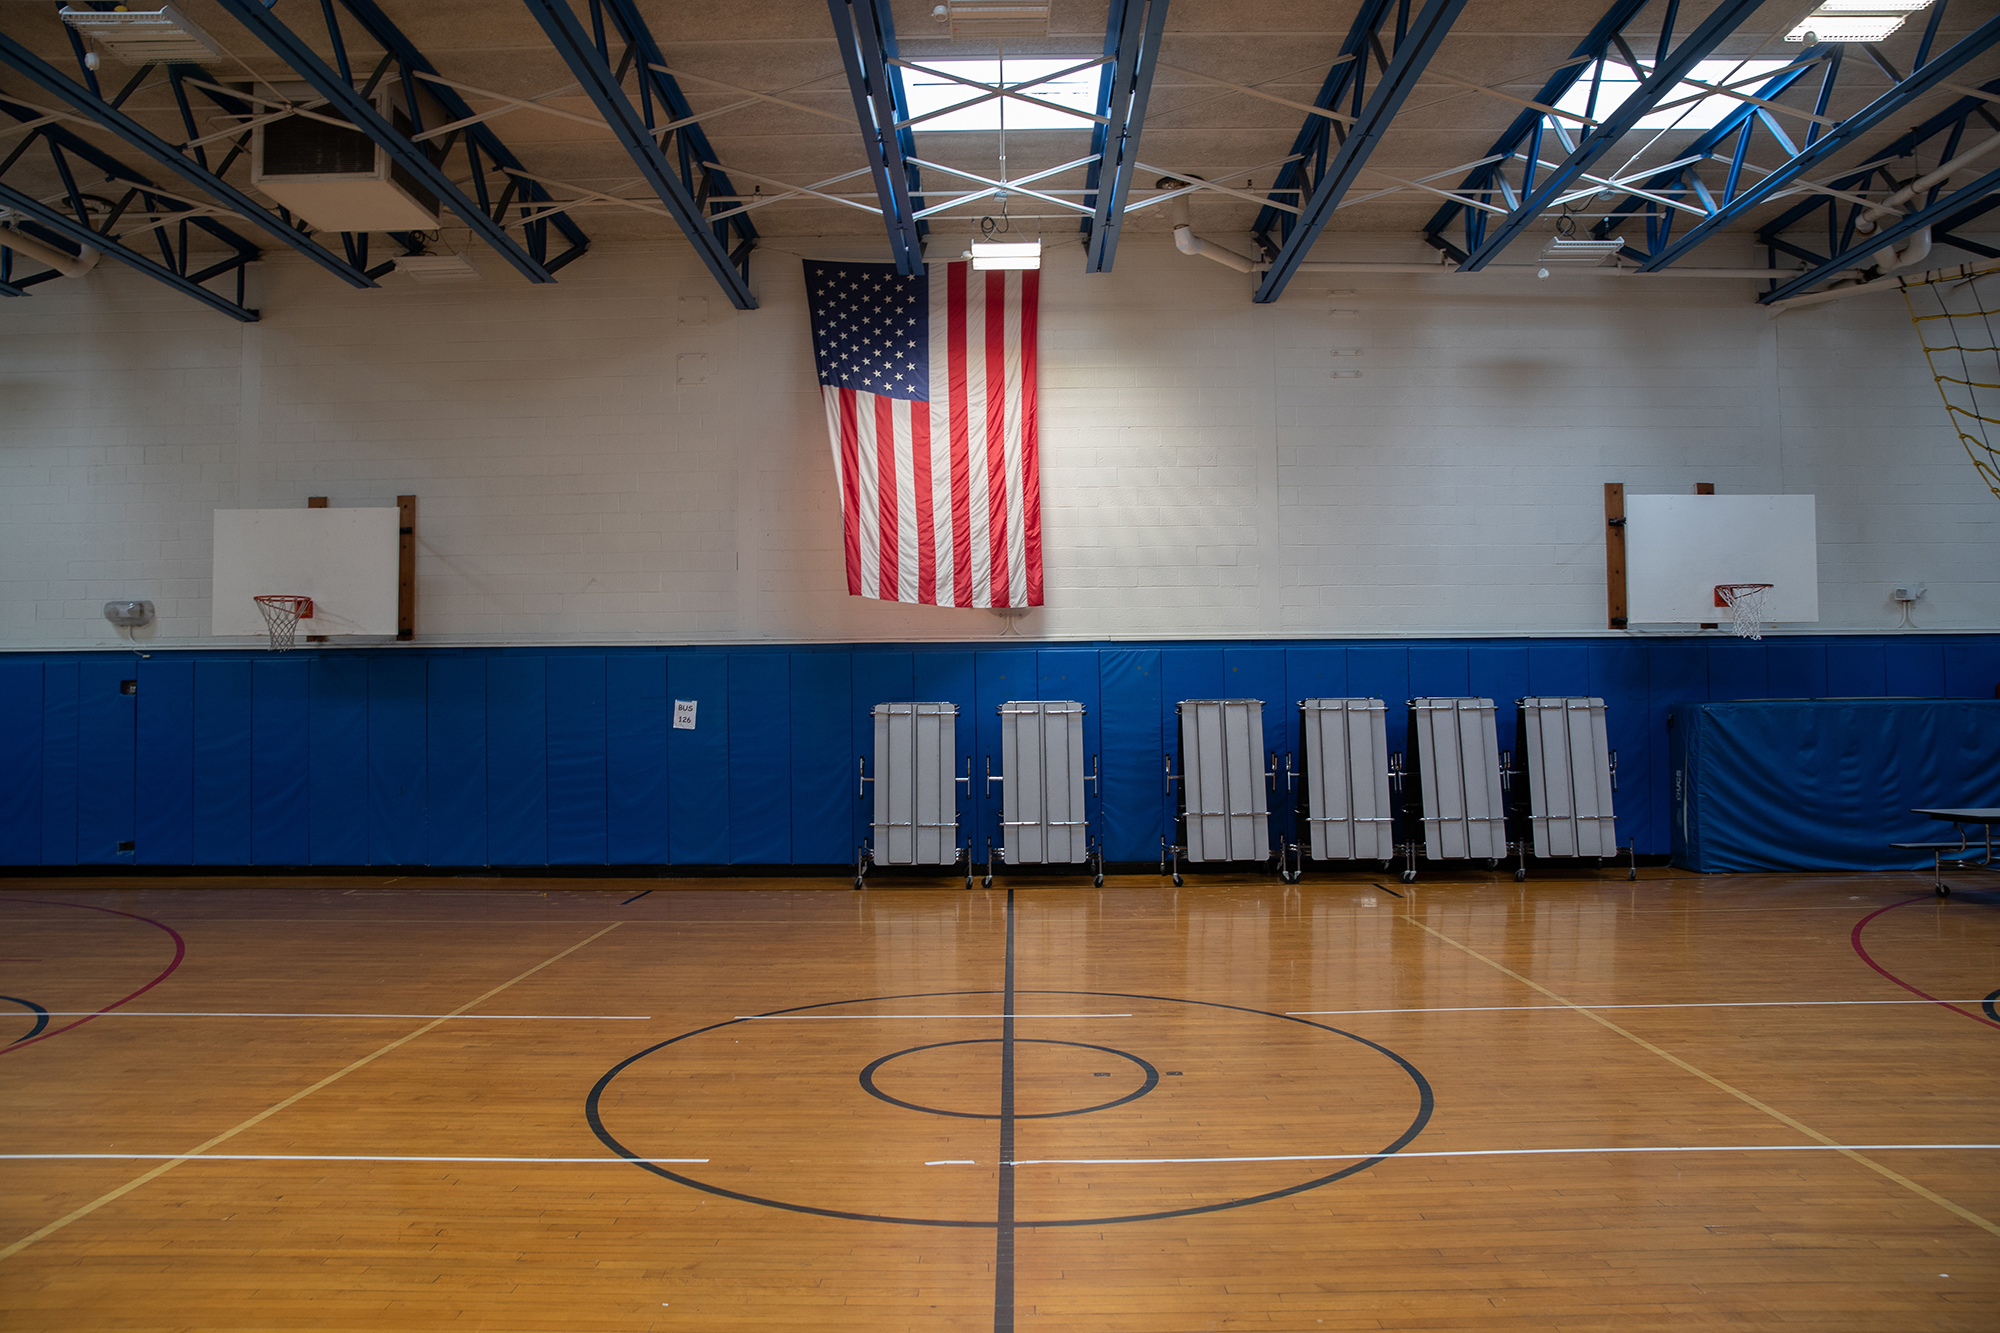 A gymnasium sits empty at the KT Murphy Elementary School on March 17, 2020 in Stamford, Connecticut. Stamford Public Schools closed the week before to help slow the spread of the COVID-19.